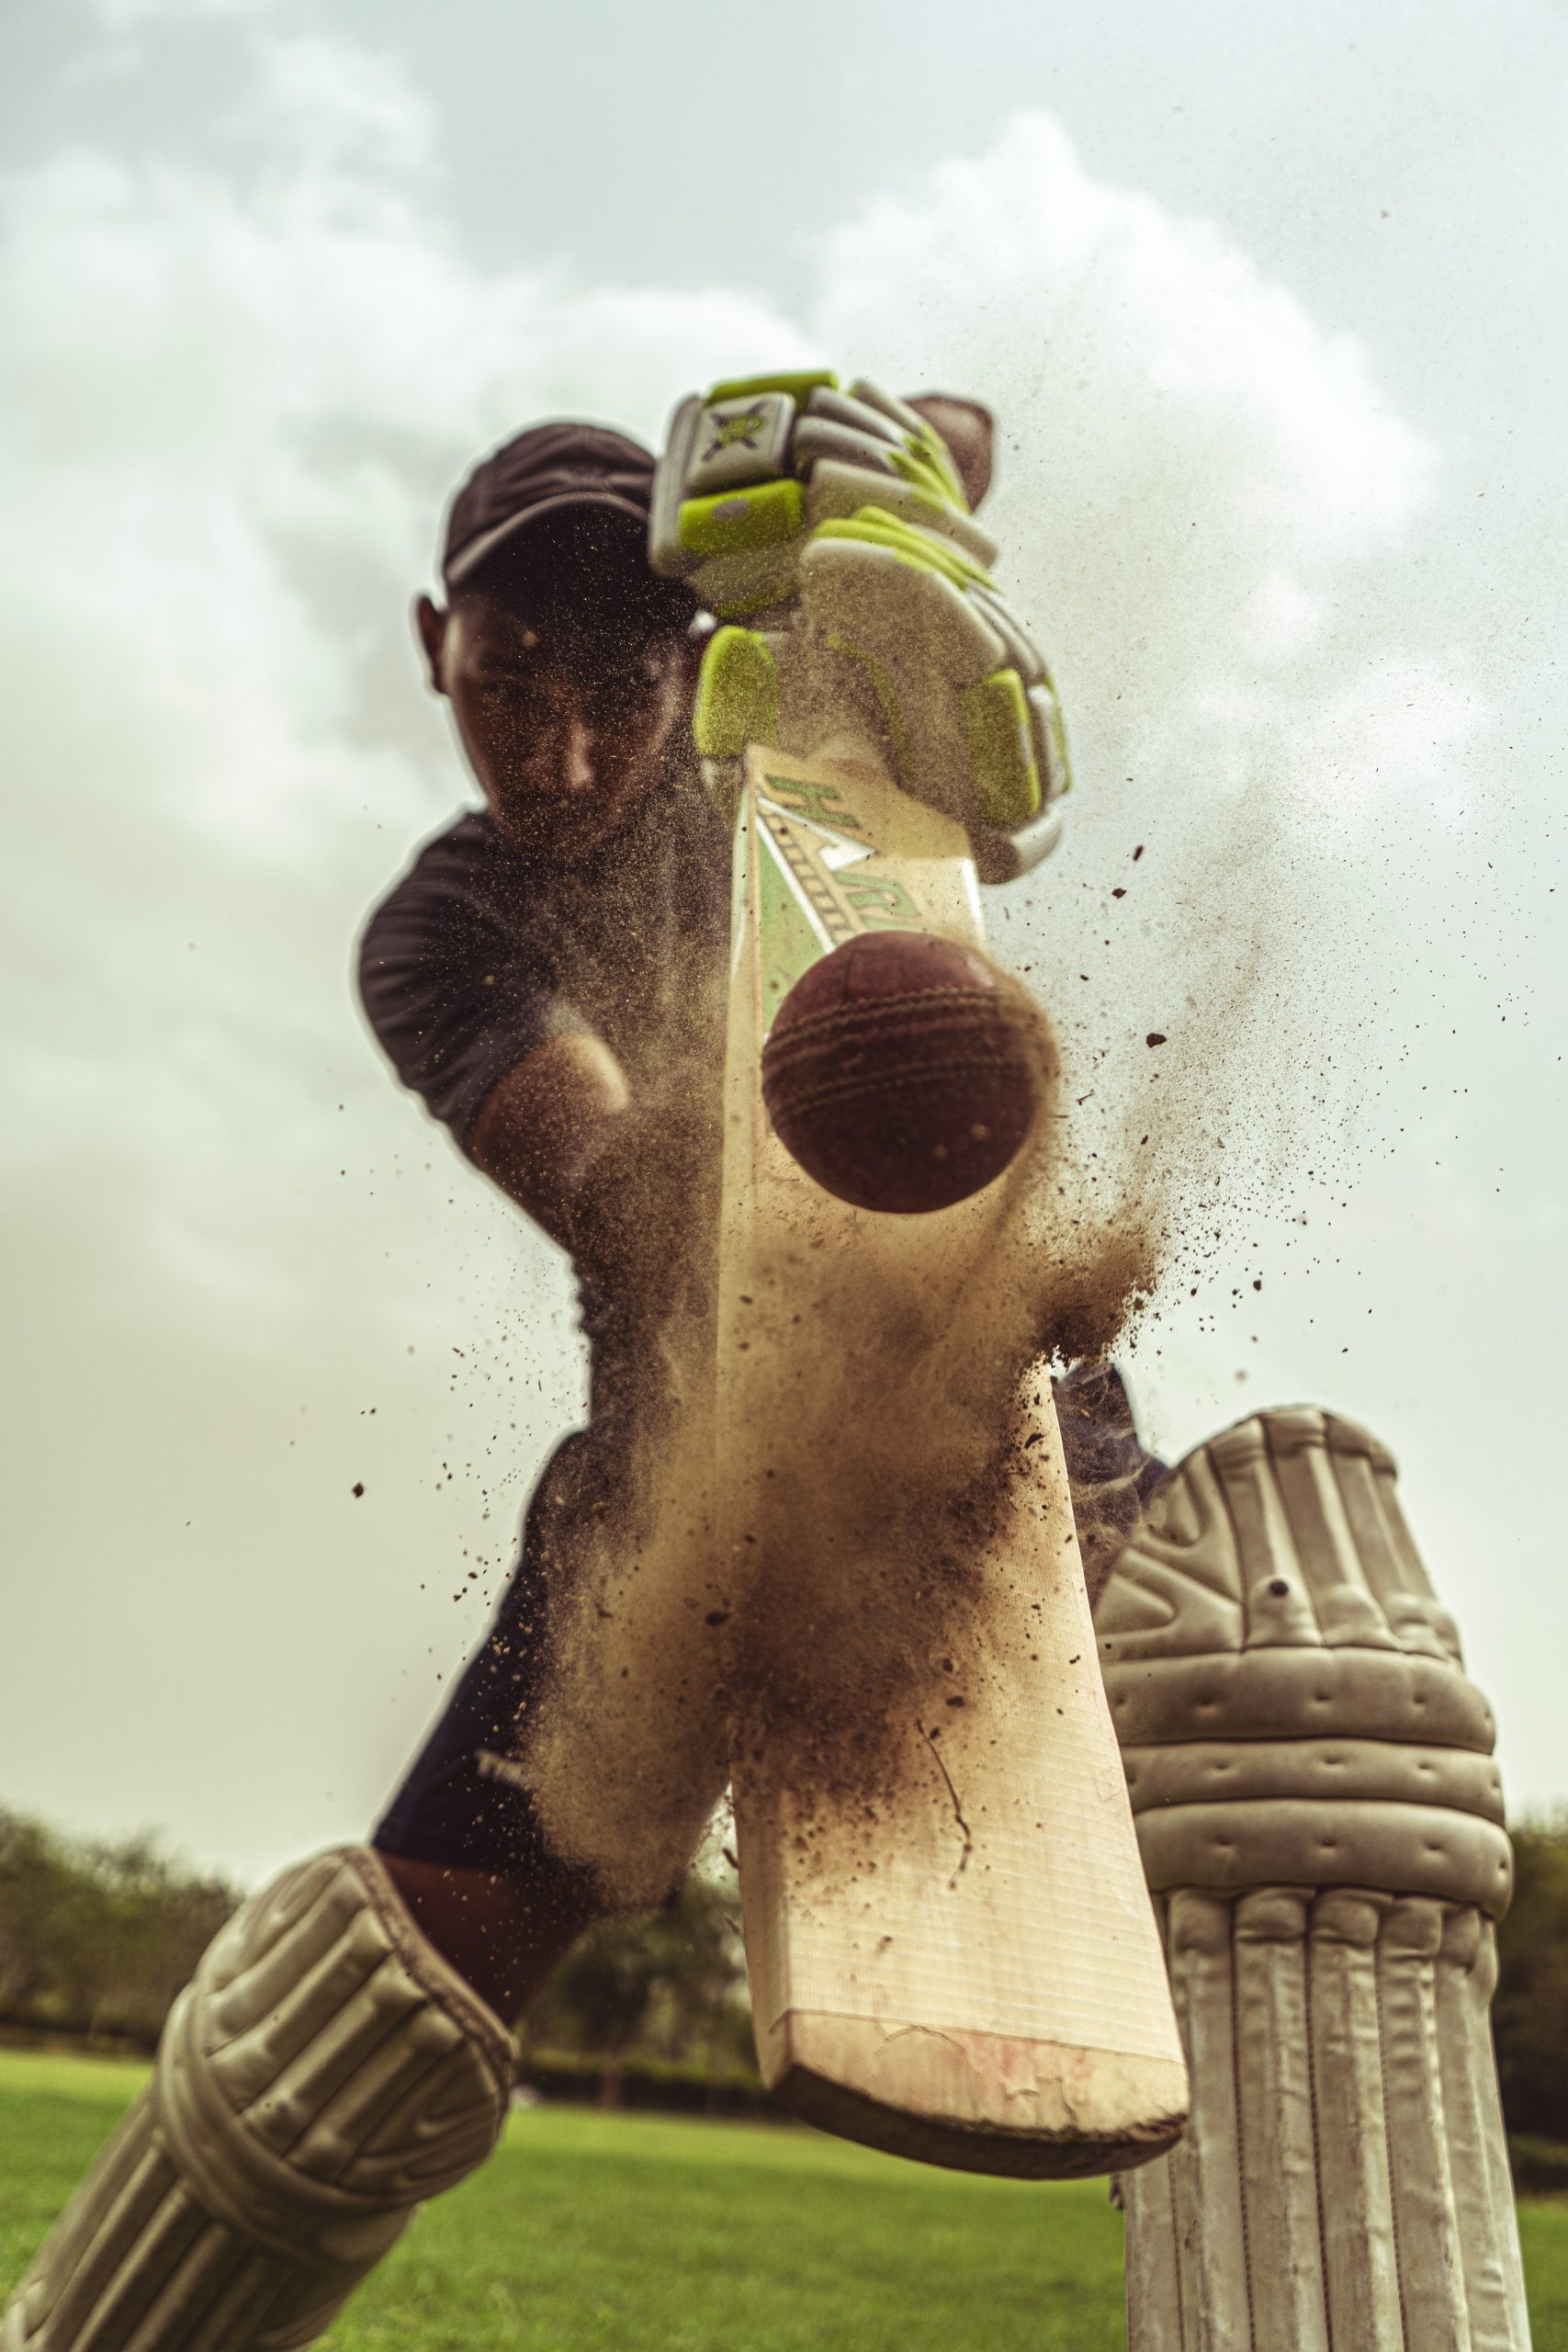 Players with Best Skills of Cricket